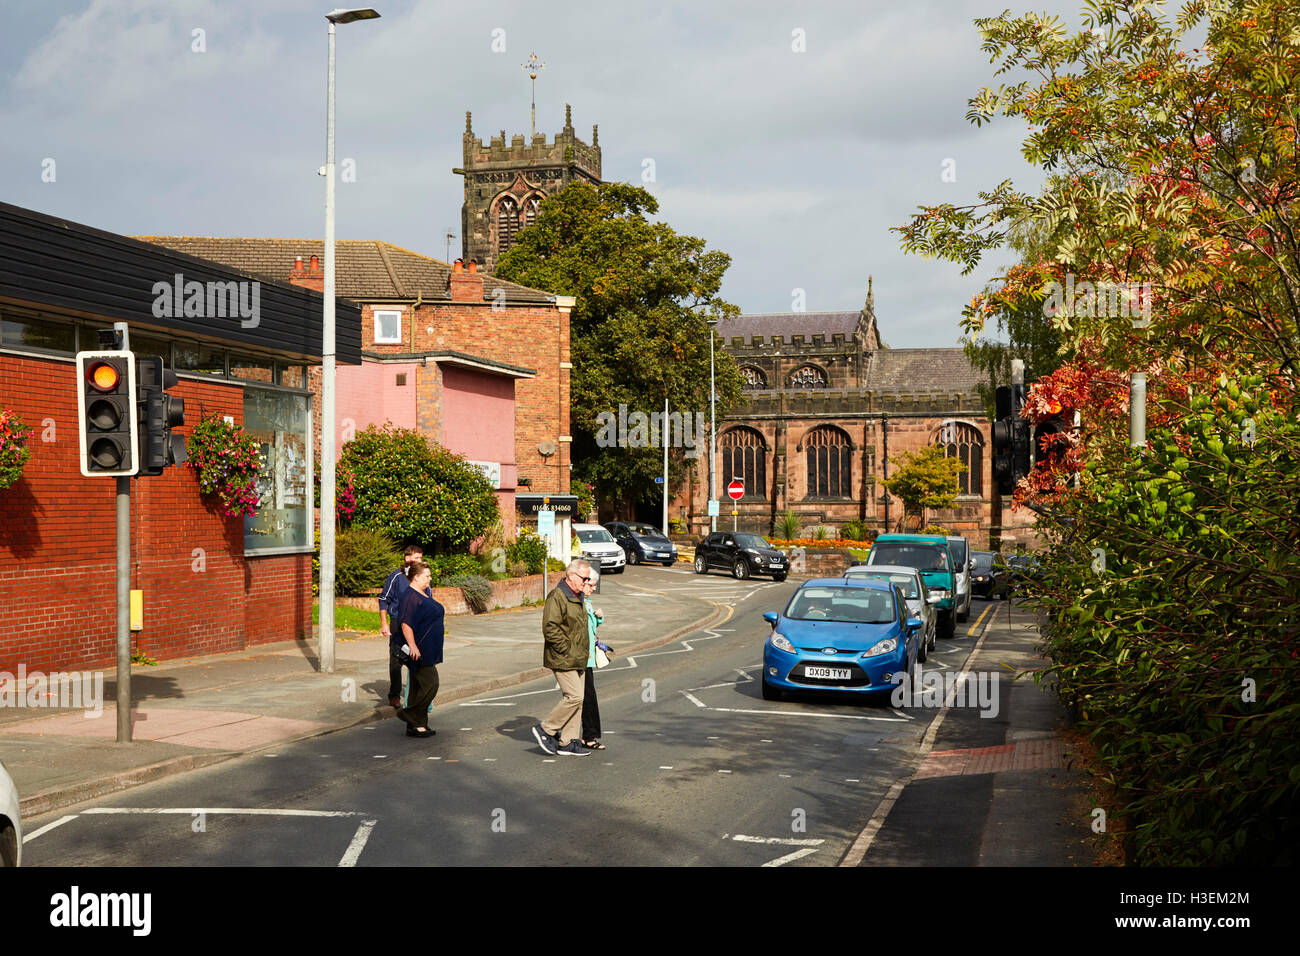 Middlewich, pedestrians crossing road - Stock Image